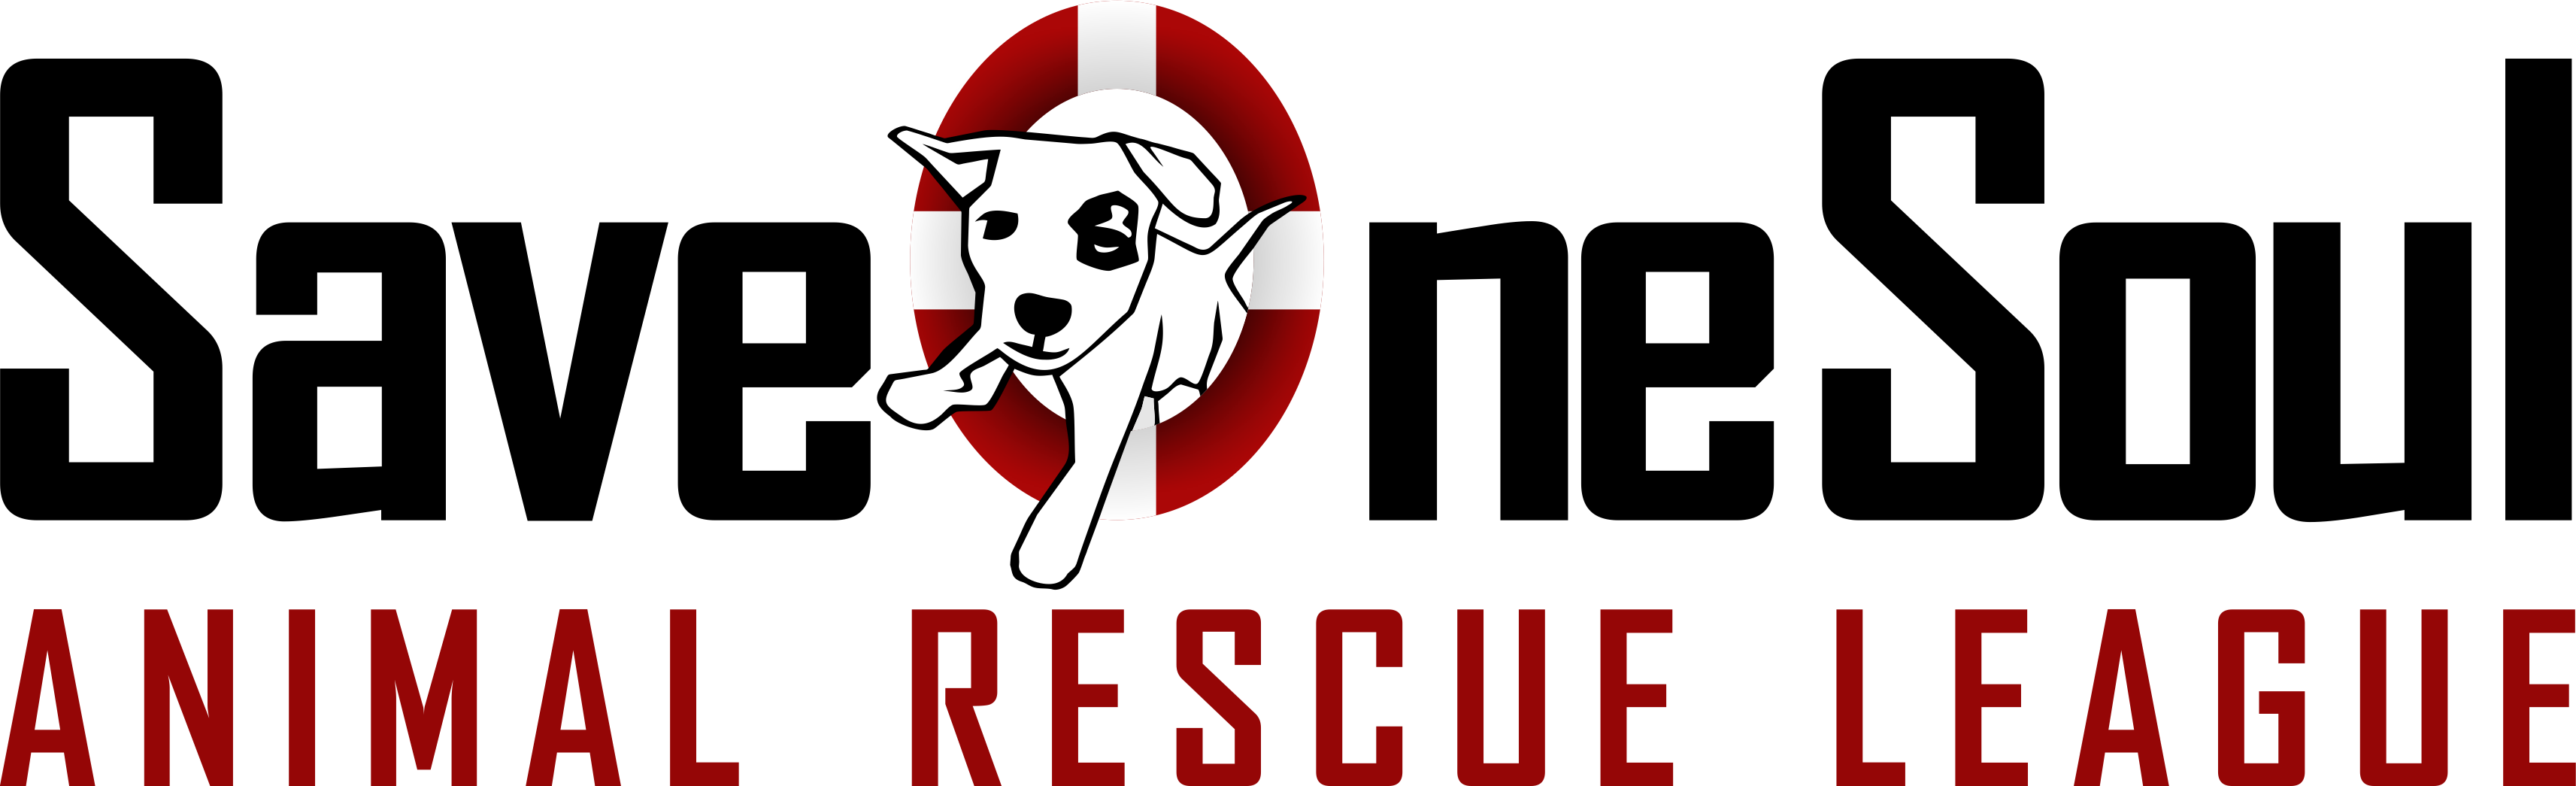 Save One Soul Animal Rescue League Logo